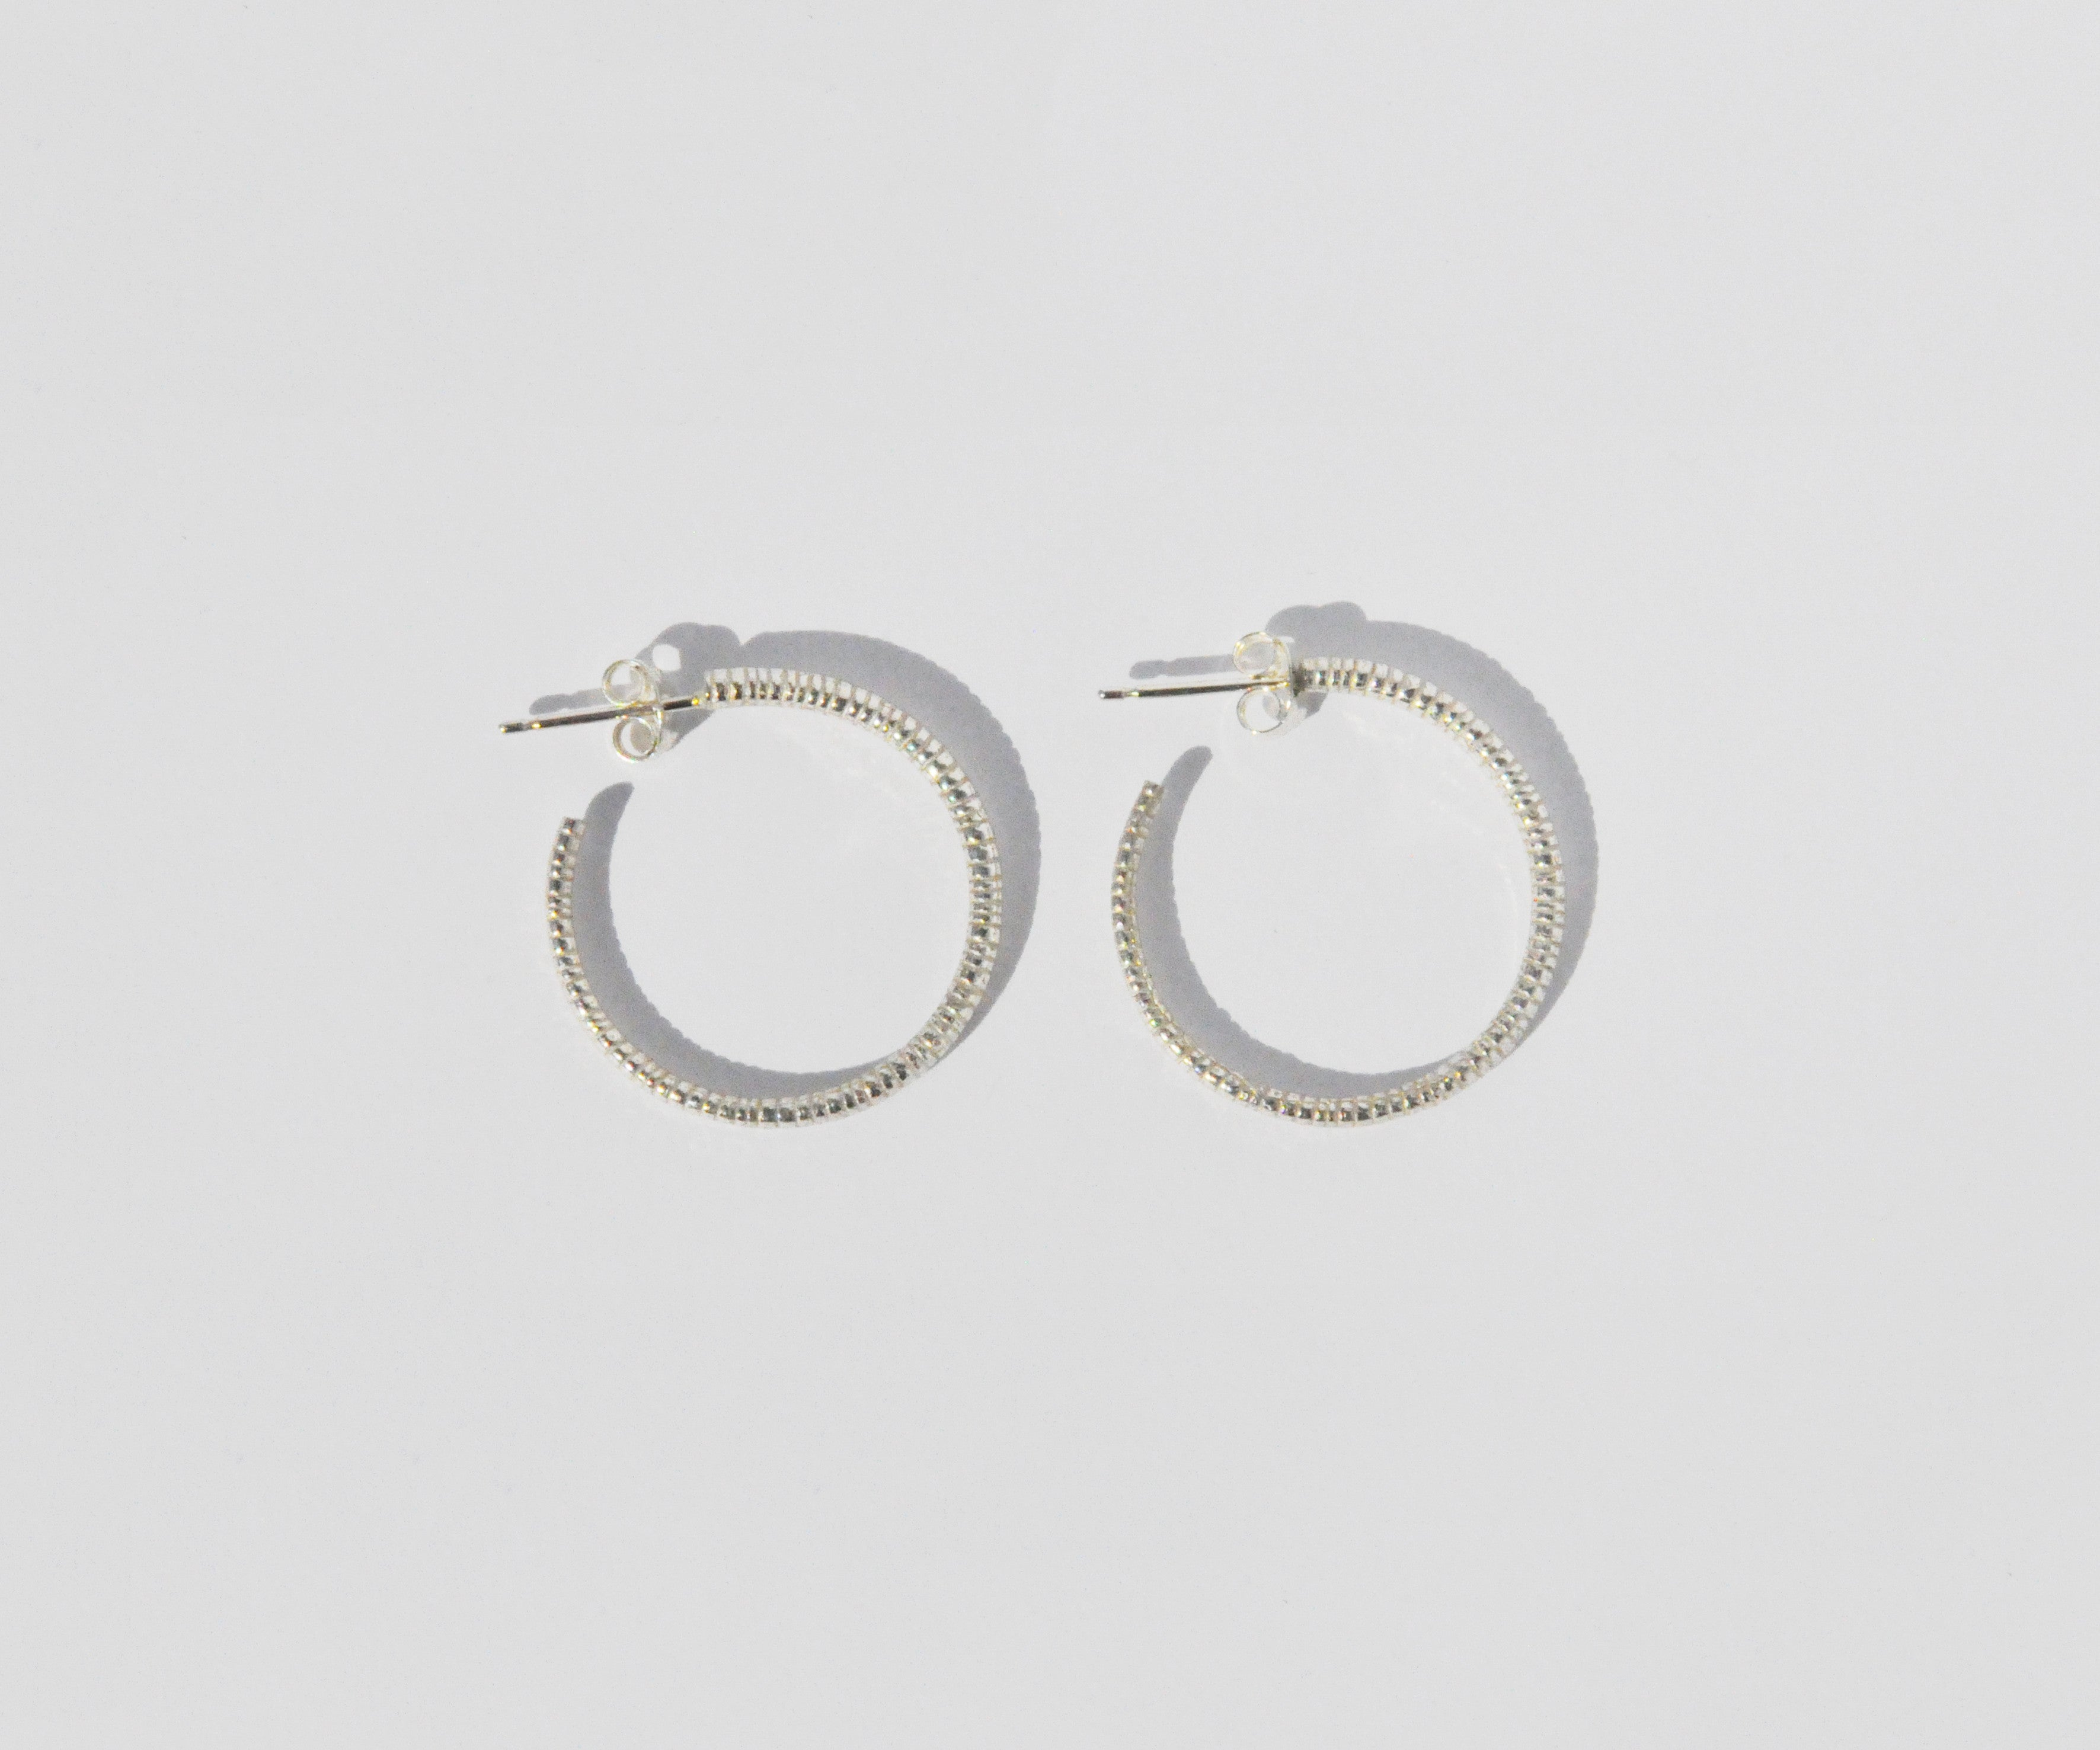 salt hoop earrings